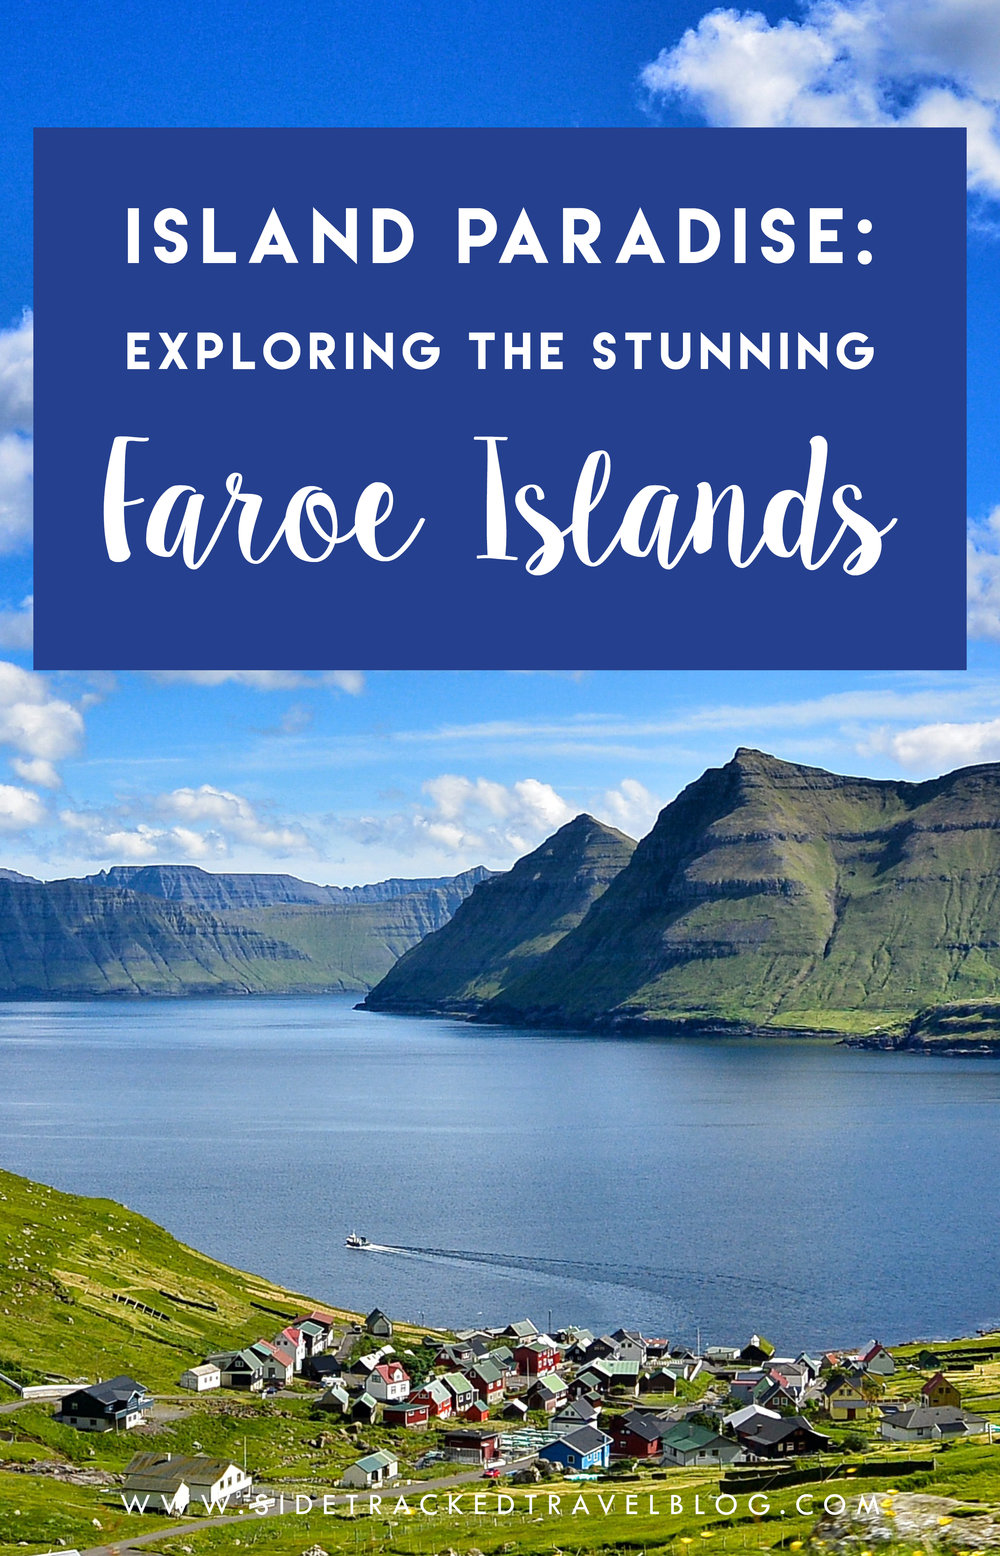 There might not be any palm trees or white sandy beaches, but the Faroe Islands are indeed an unspoiled island paradise!